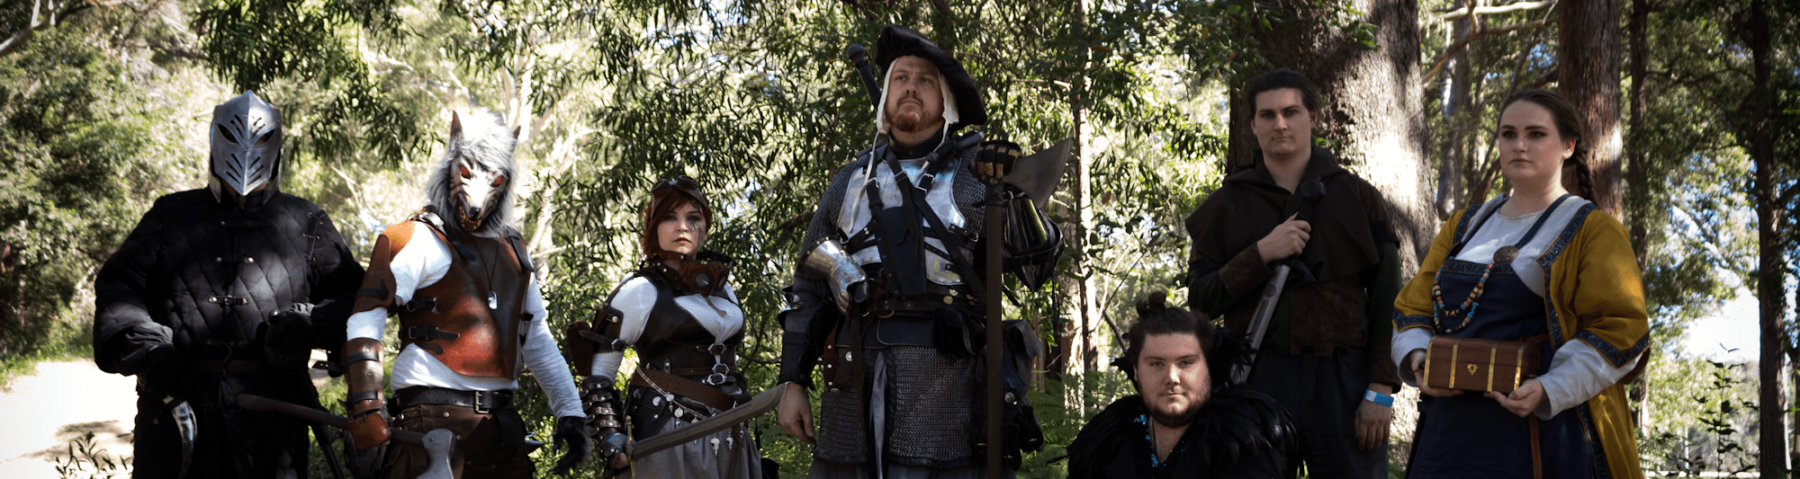 The Obsidian Chronicles LARP